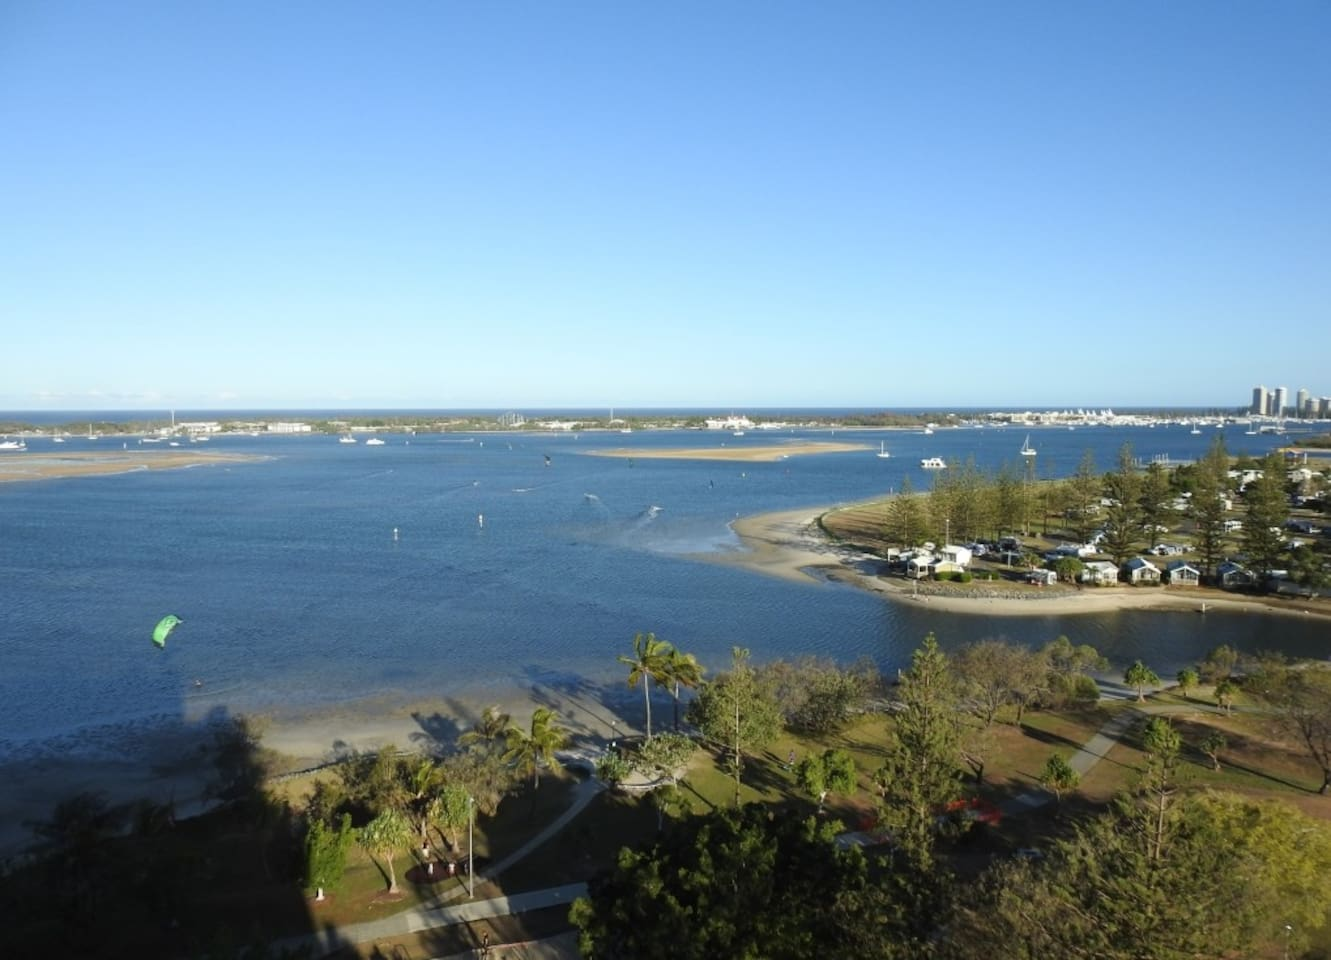 View of the Nerang River estuary with Sea World in the distance